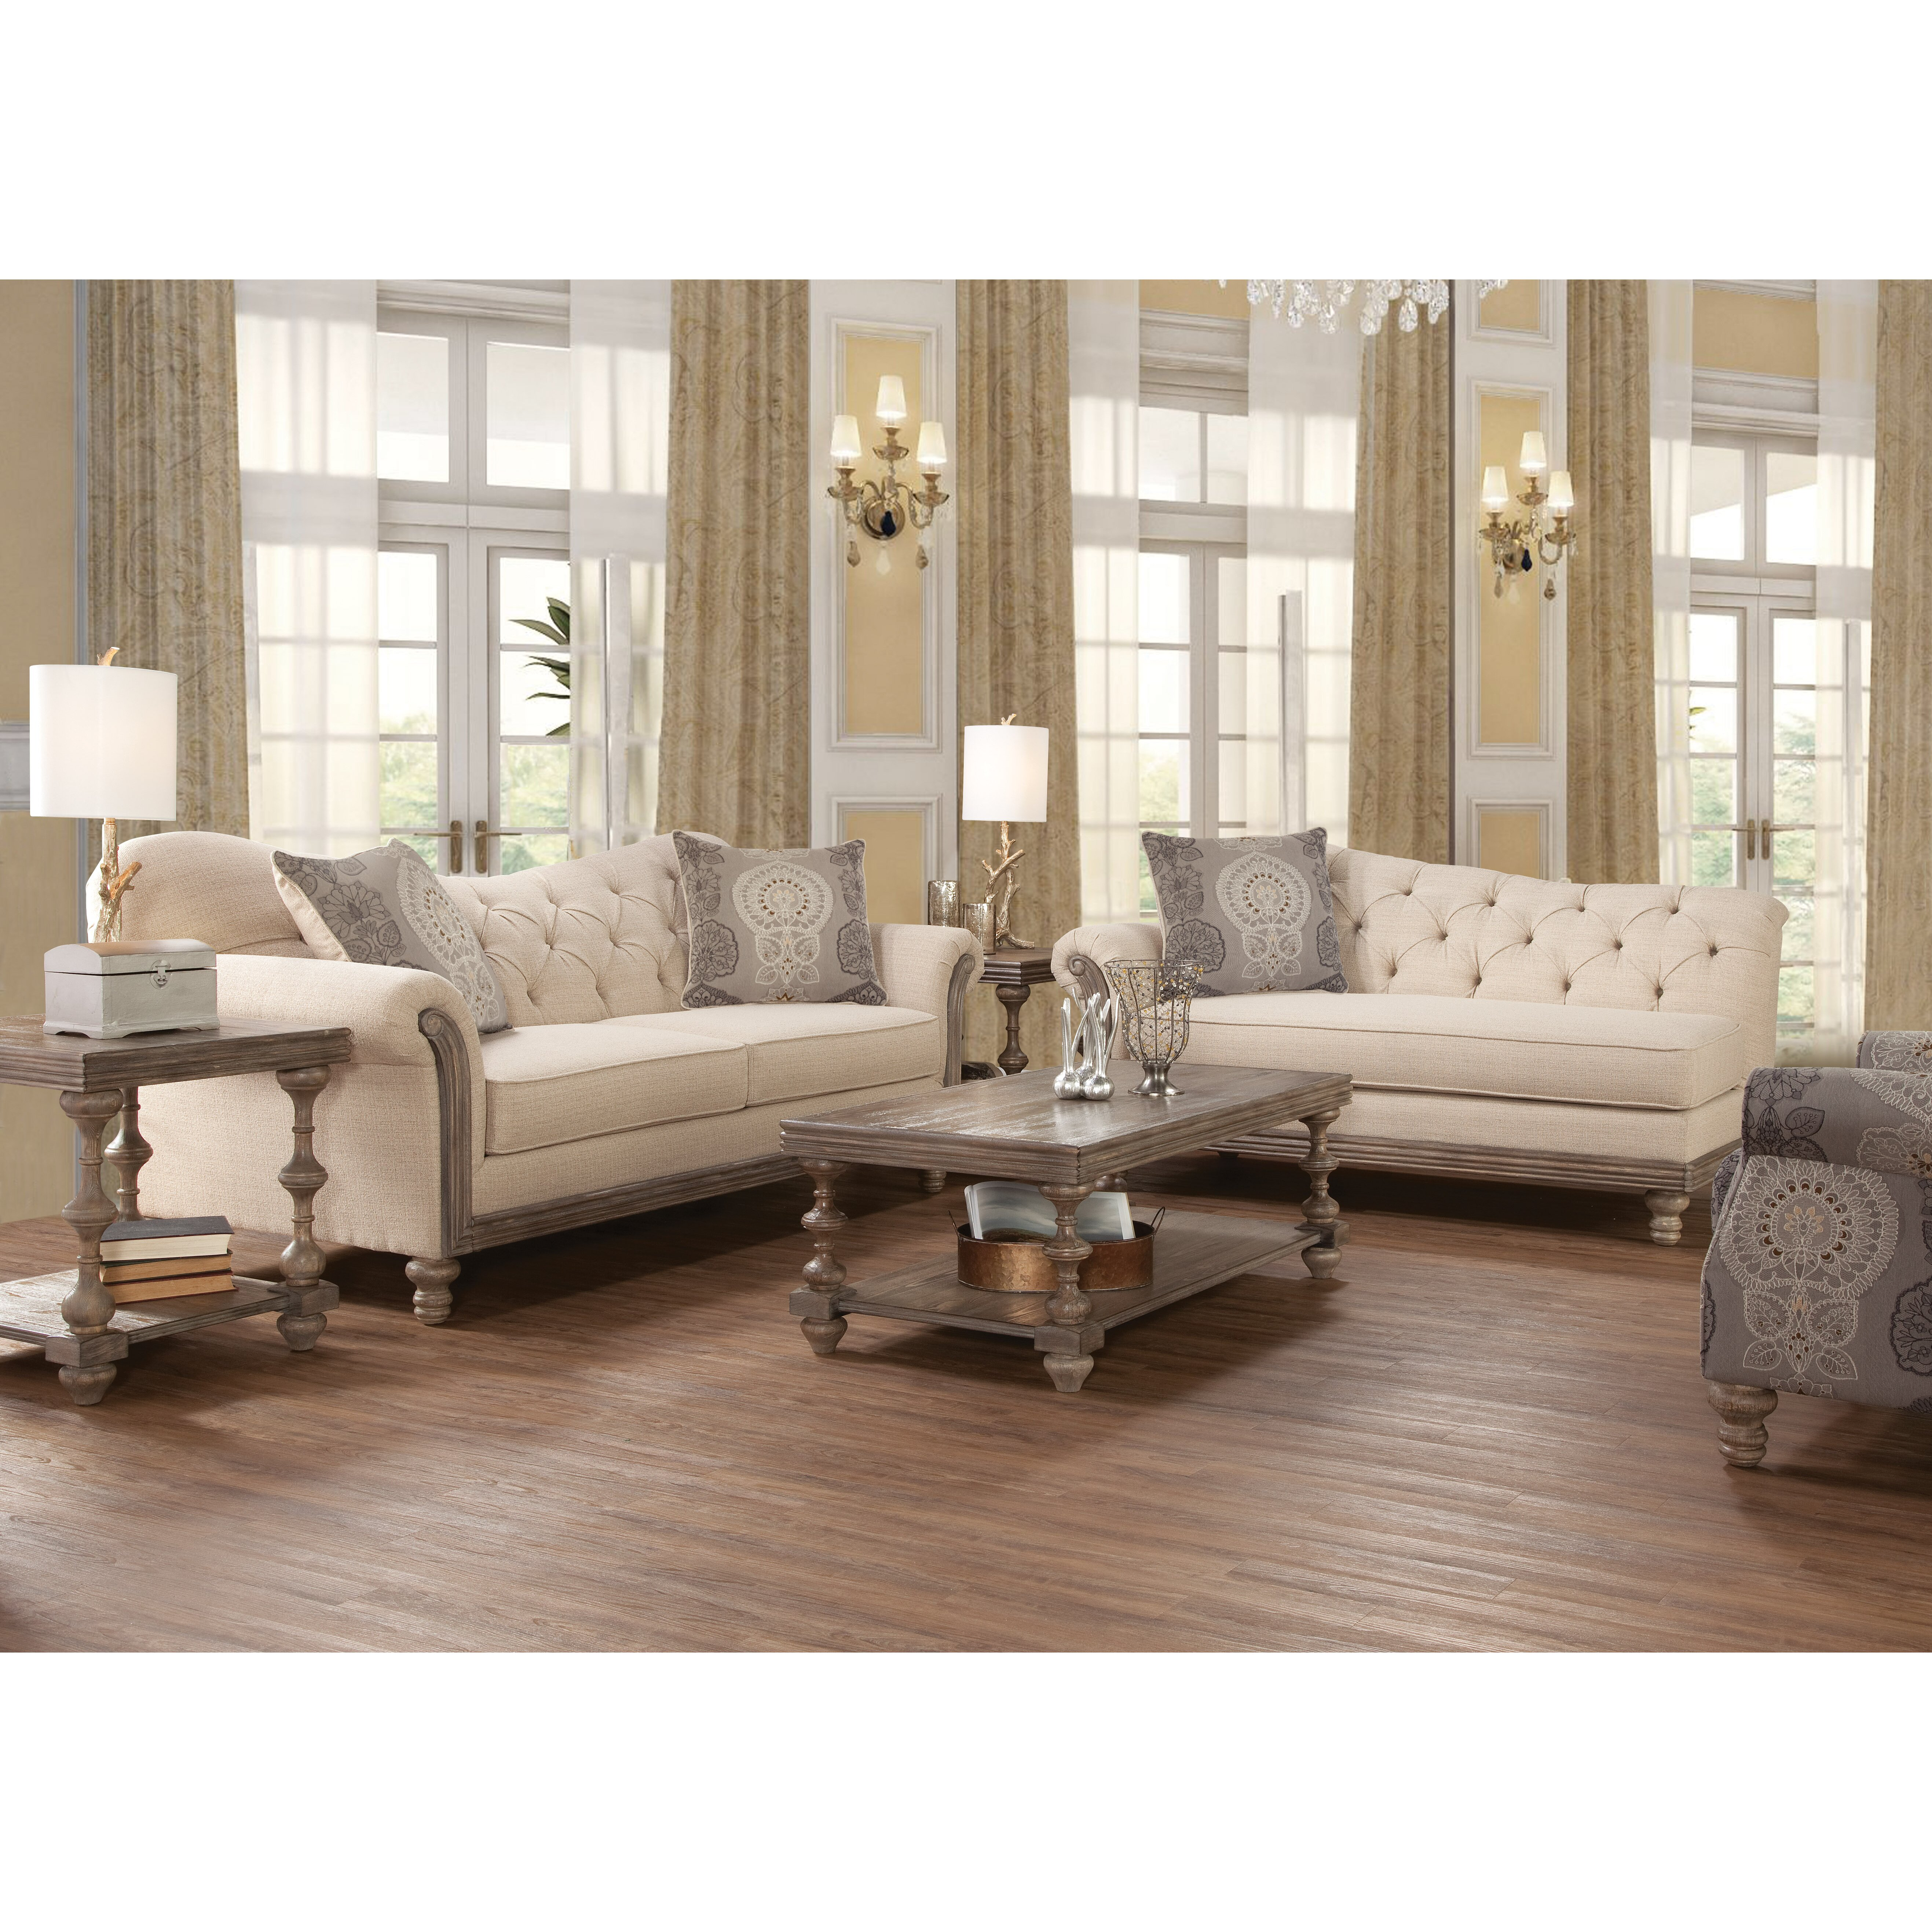 Bungalow rose roosa living room collection reviews wayfair for Living room furniture images